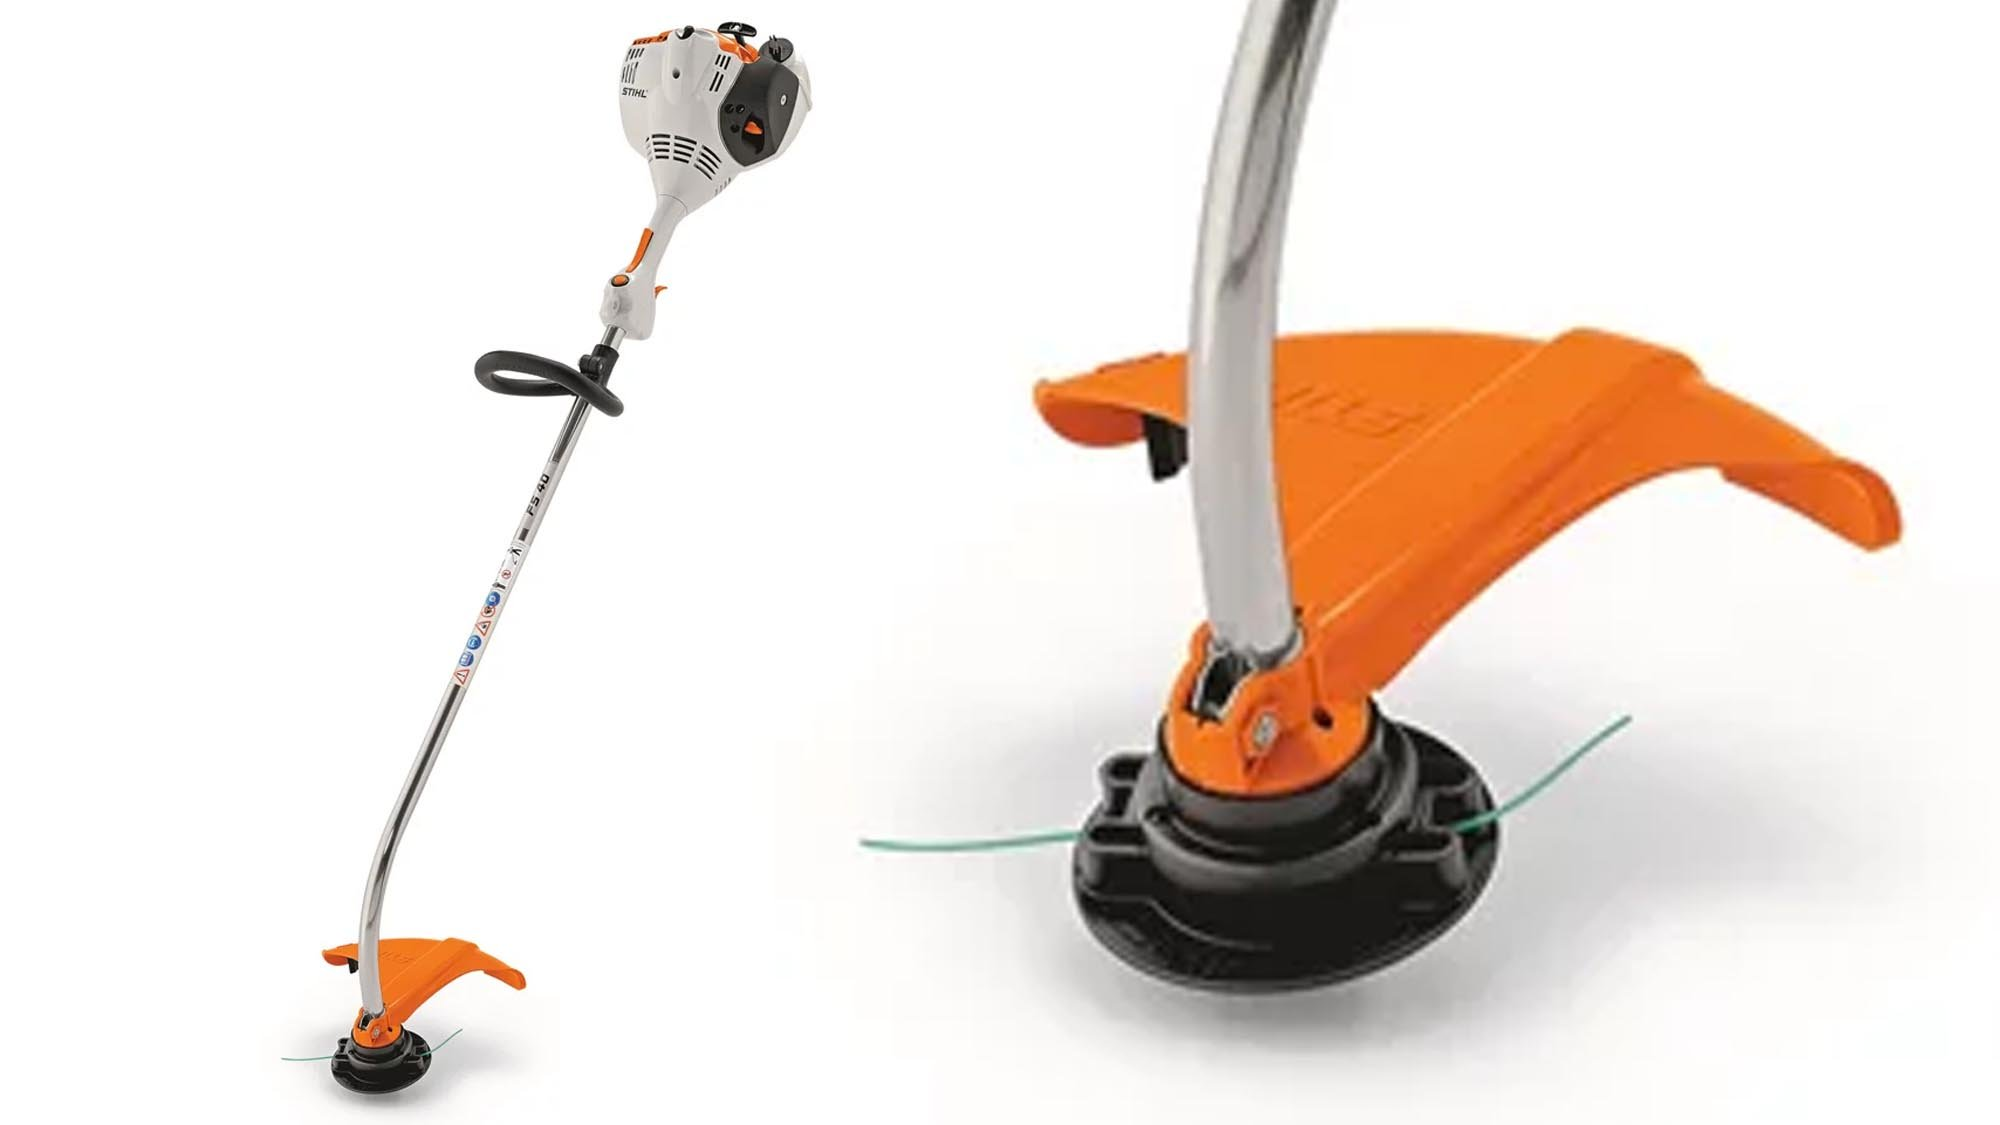 Best grass trimmer the best electric cordless and petrol trimmers some gardens need a petrol trimmer and the stihl fs40 is a good affordable example from one of the biggest names in the business keyboard keysfo Images